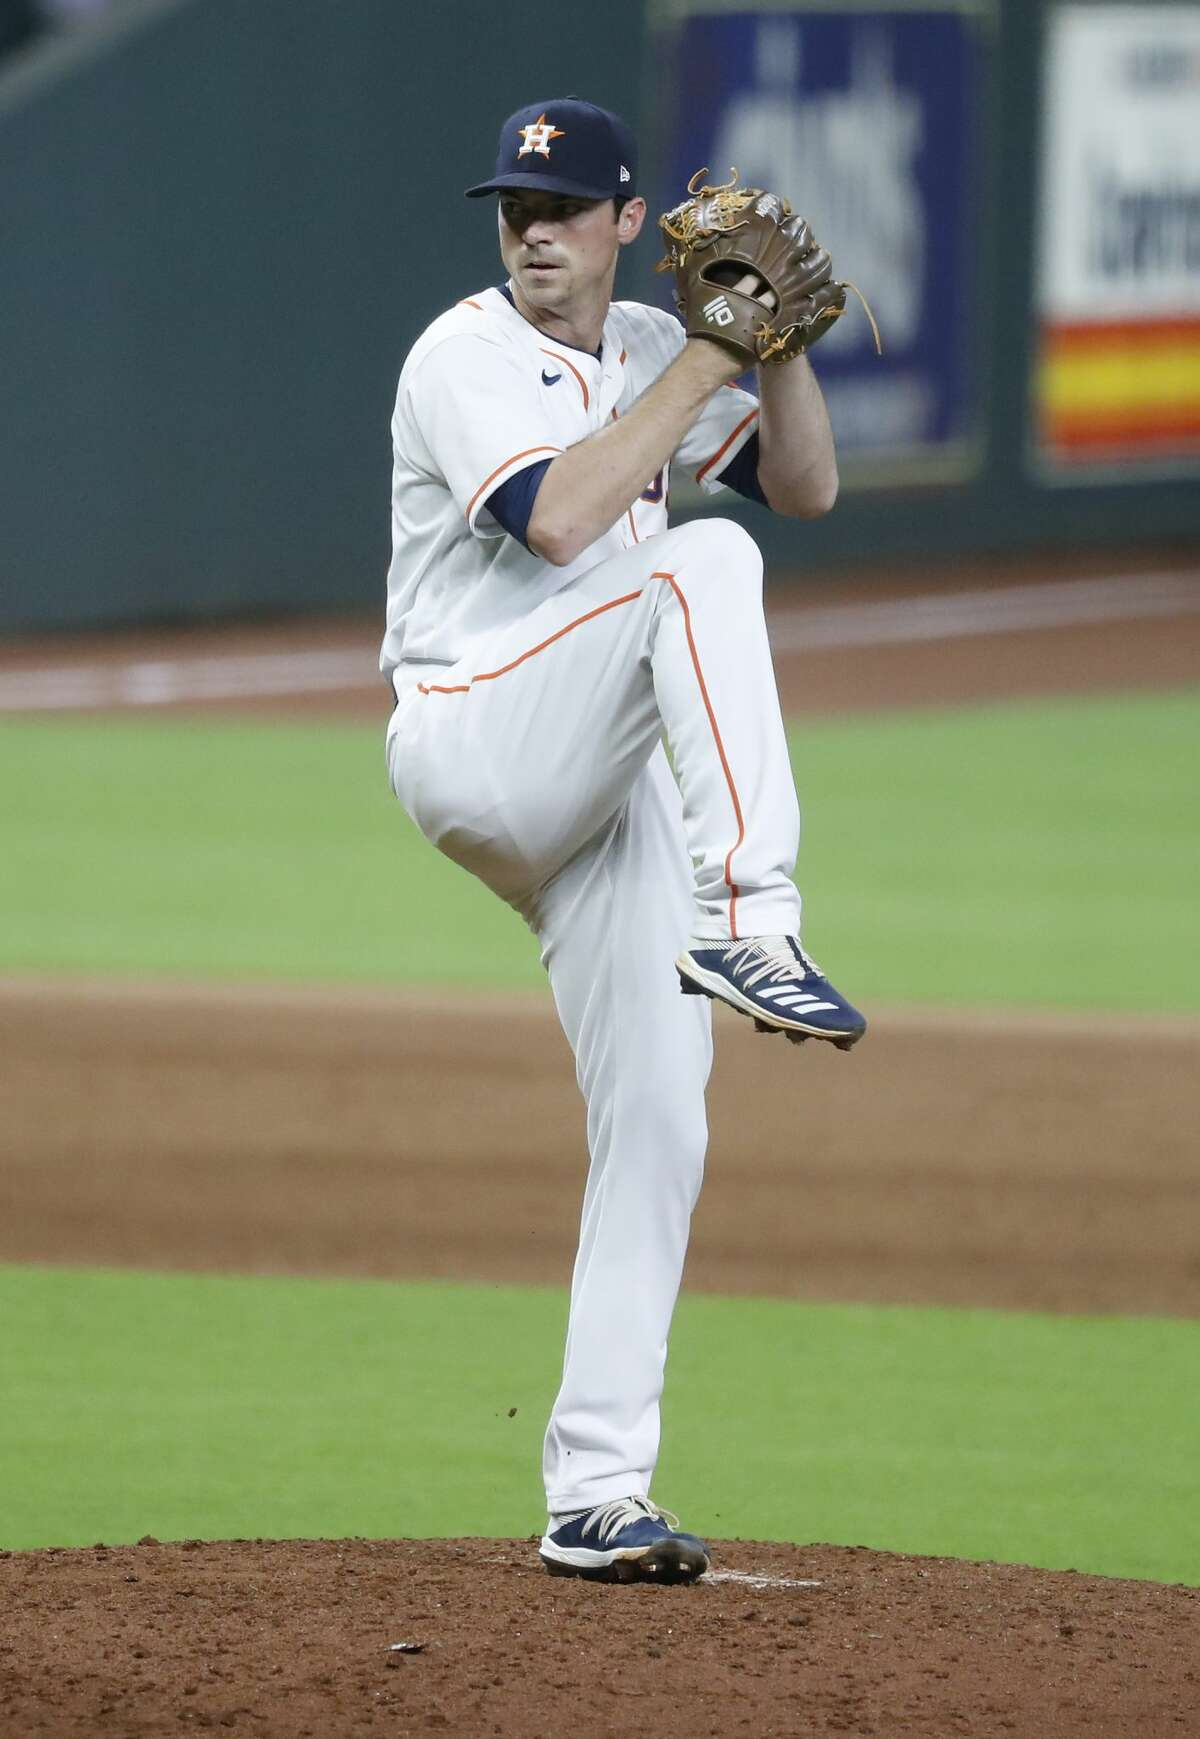 Houston Astros relief pitcher Brooks Raley (58) closes out the game against Texas Rangers during the ninth inning of an MLB baseball game at Minute Maid Park, Thursday, September 17, 2020, in Houston. Astros won 2-1.